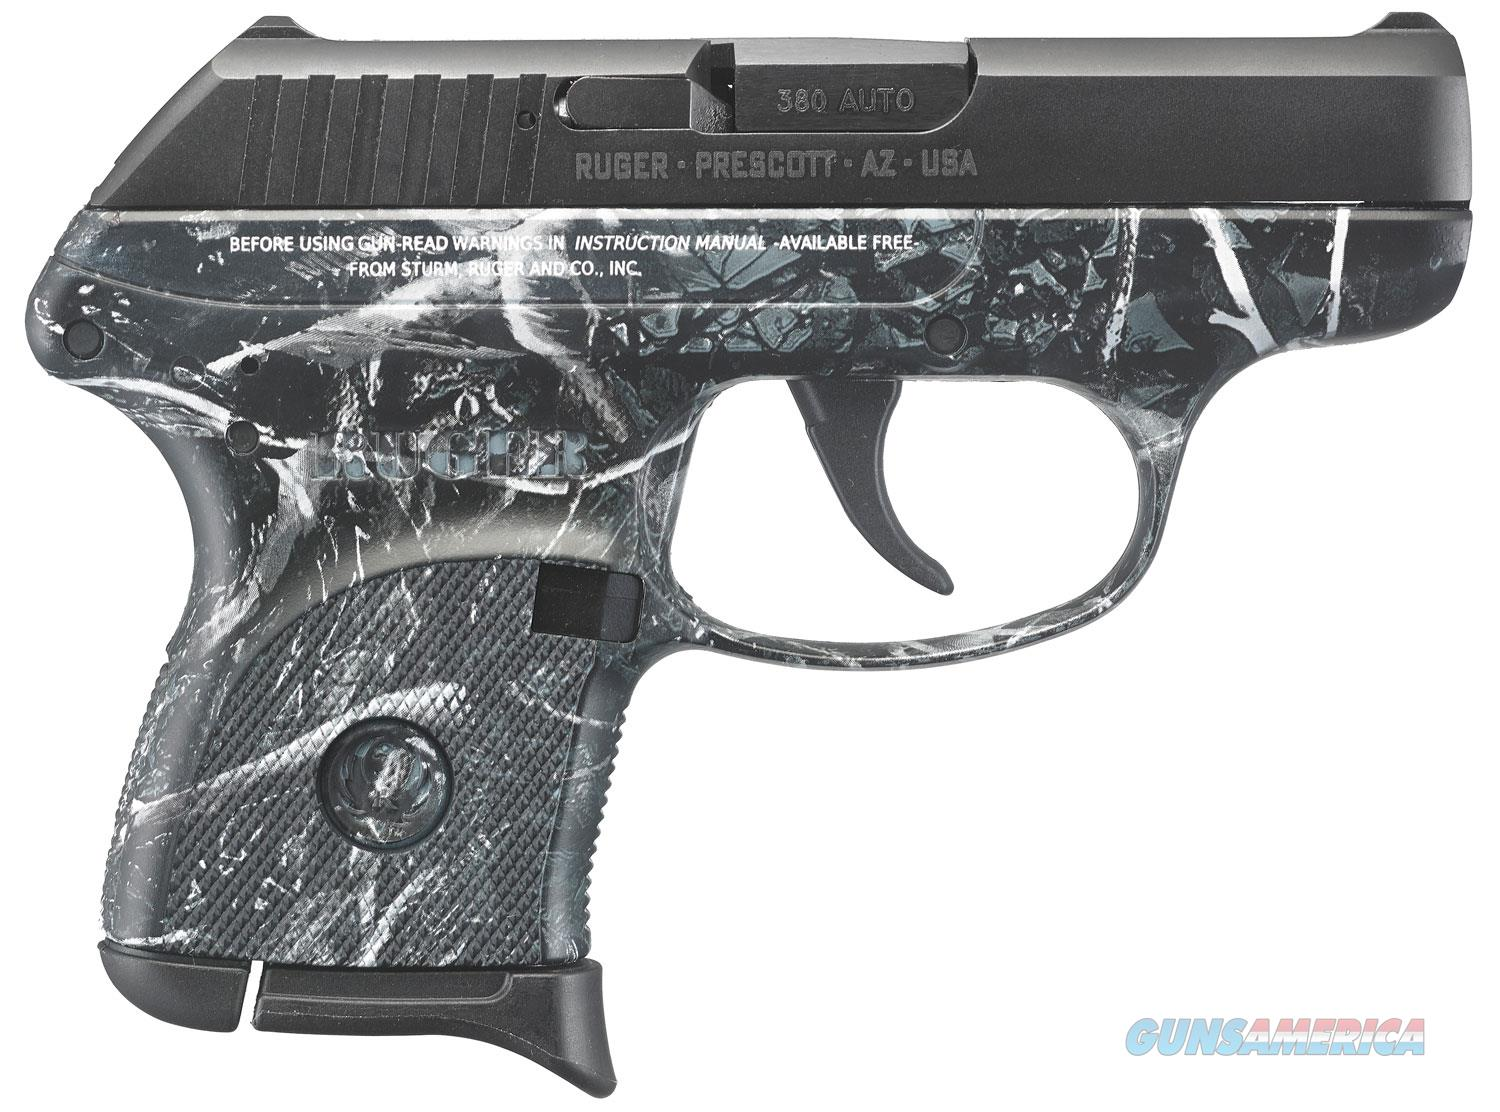 """Ruger LCP .380 ACP 2.75"""" 6+1 Moon Shine Harvest Camo - New in Box  Guns > Pistols > Ruger Semi-Auto Pistols > LCP"""